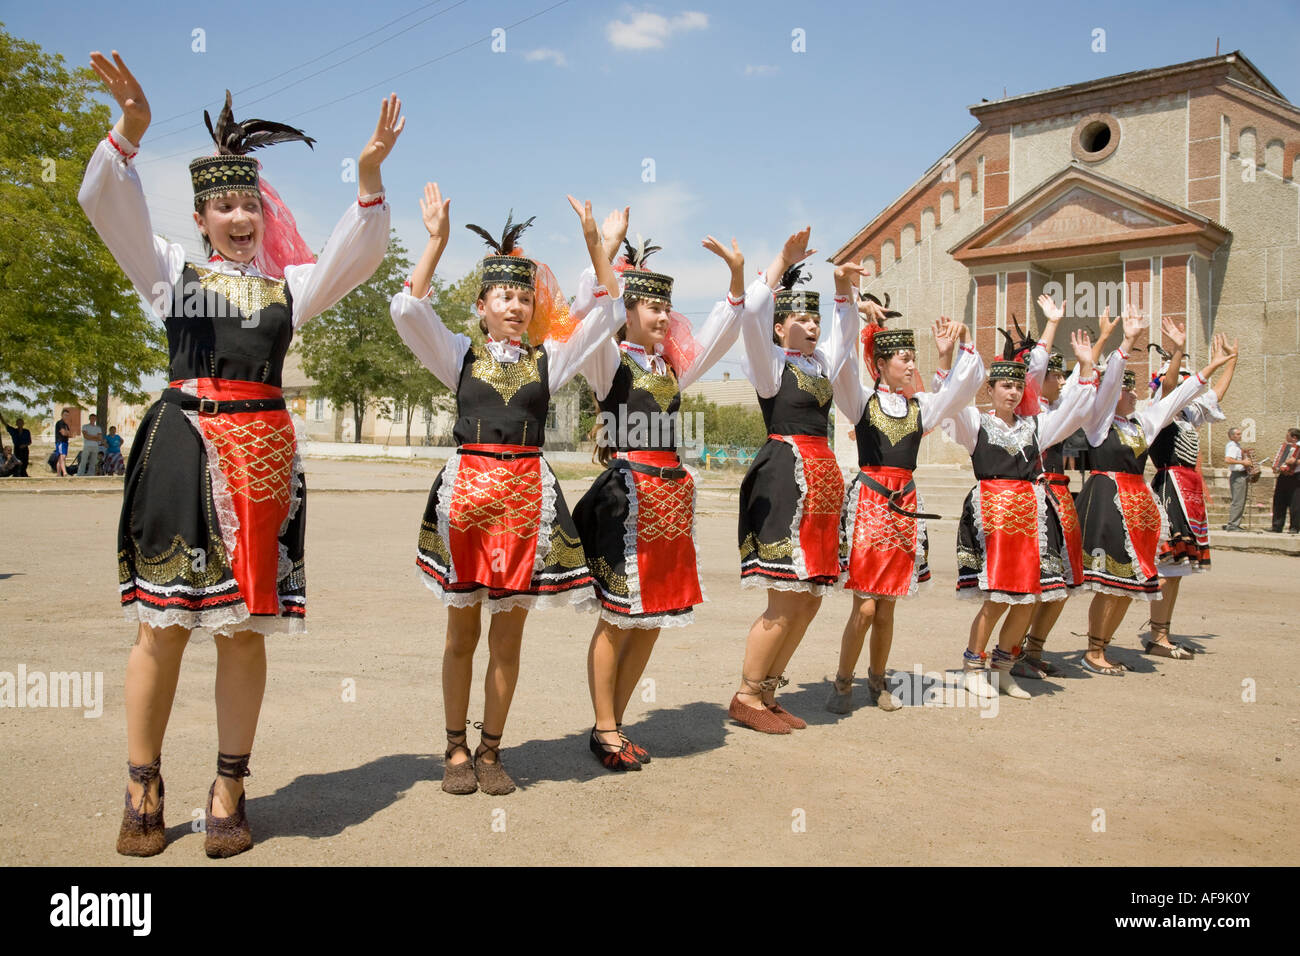 Young girls in traditional Ukrainian costumes dancing in front of the town house in Plotzk / Ukraine Stock Photo